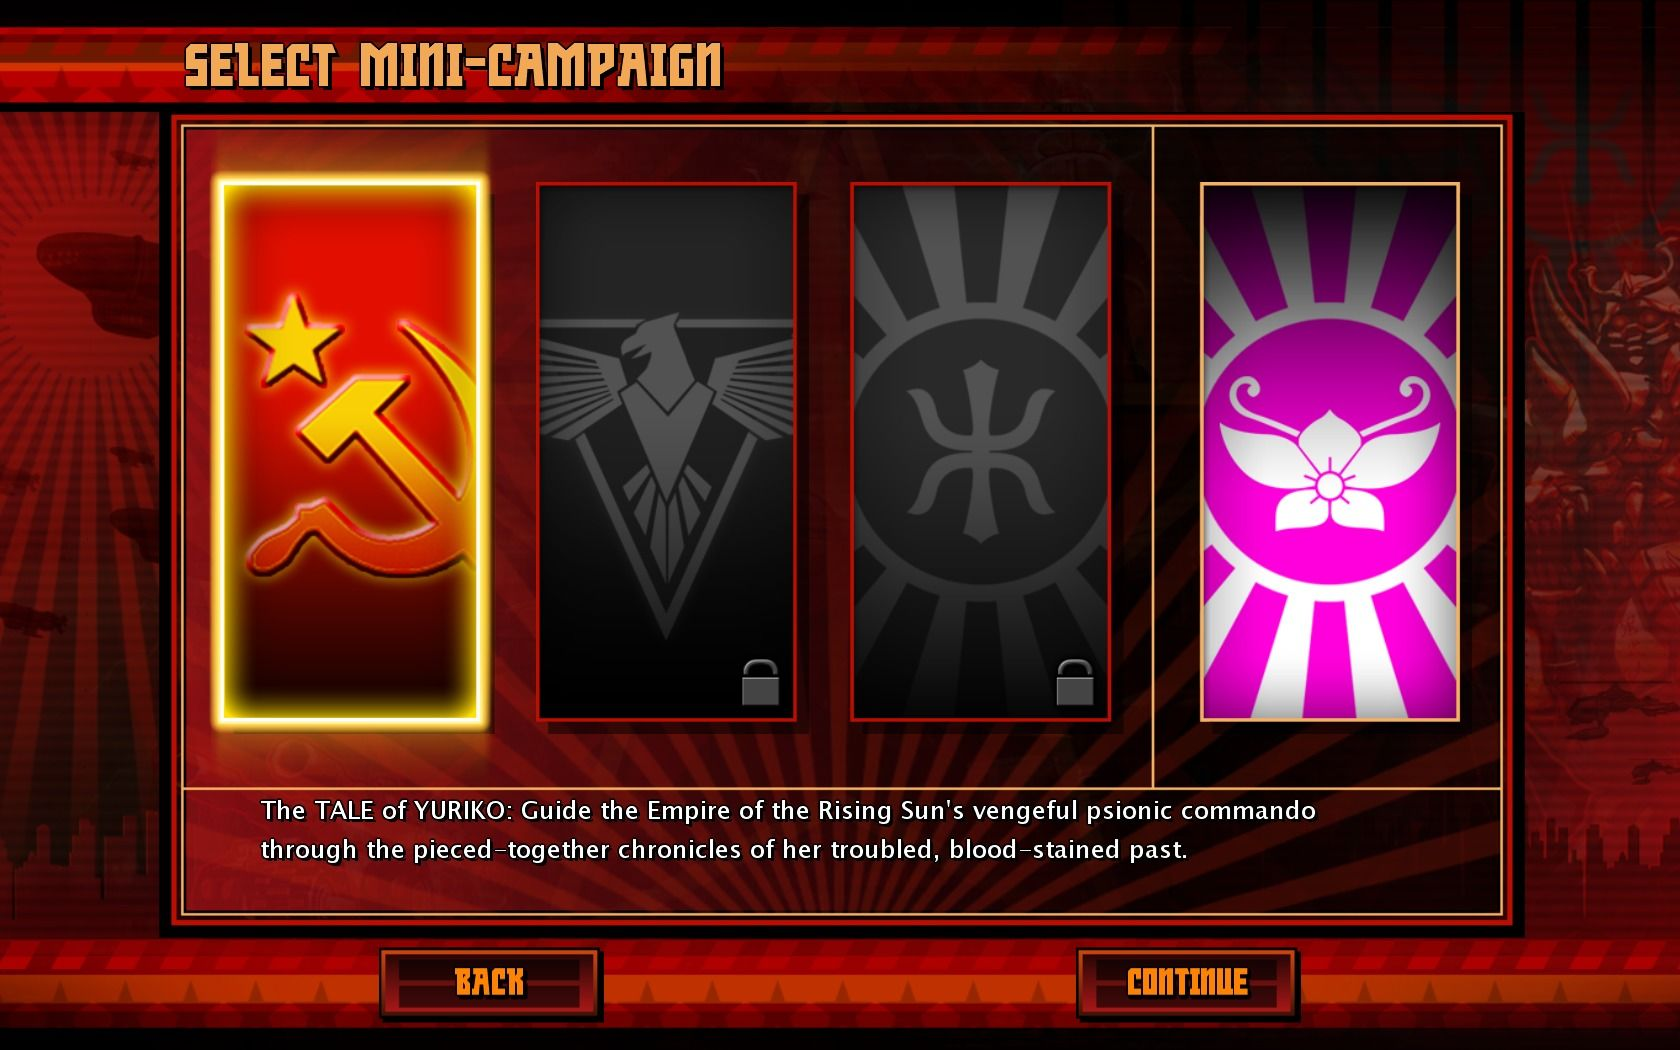 Command & Conquer: Red Alert 3 - Uprising Windows New campaigns.